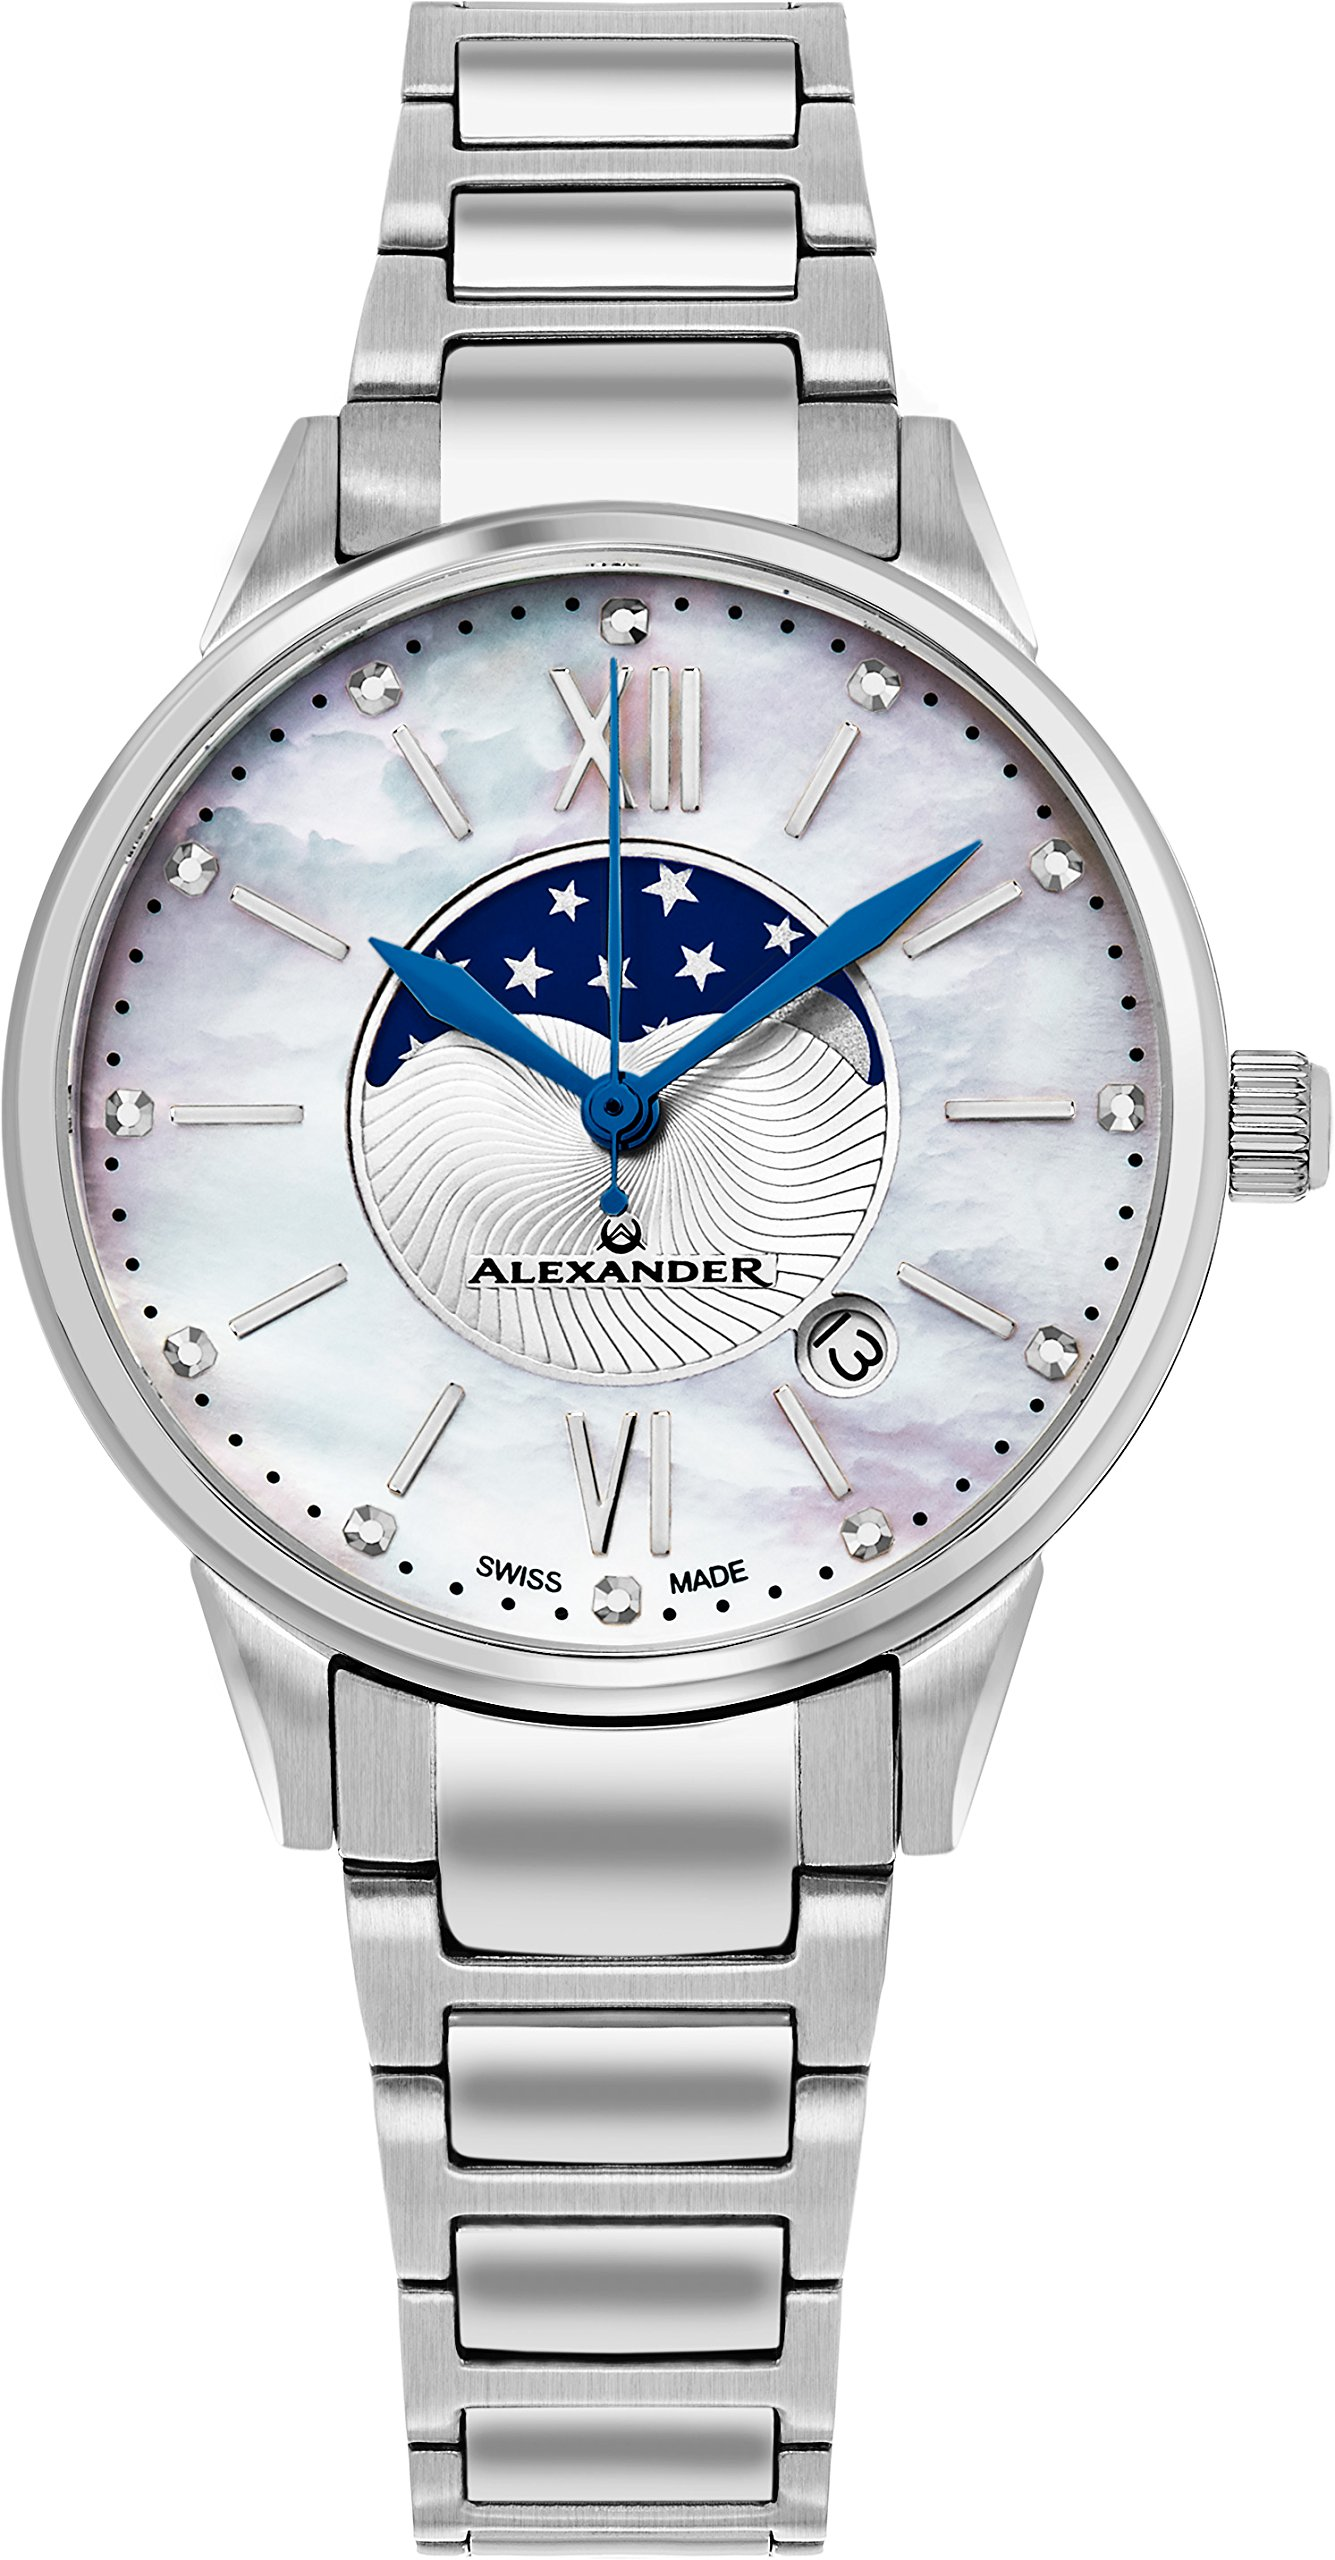 Alexander Monarch Vassilis Moon Phase Date White Mother of Pearl 35 MM Large Face Watch For Women - Swiss Quartz Stainless Steel Silver Band Elegant Ladies Fashion Designer Dress Watch A204B-01